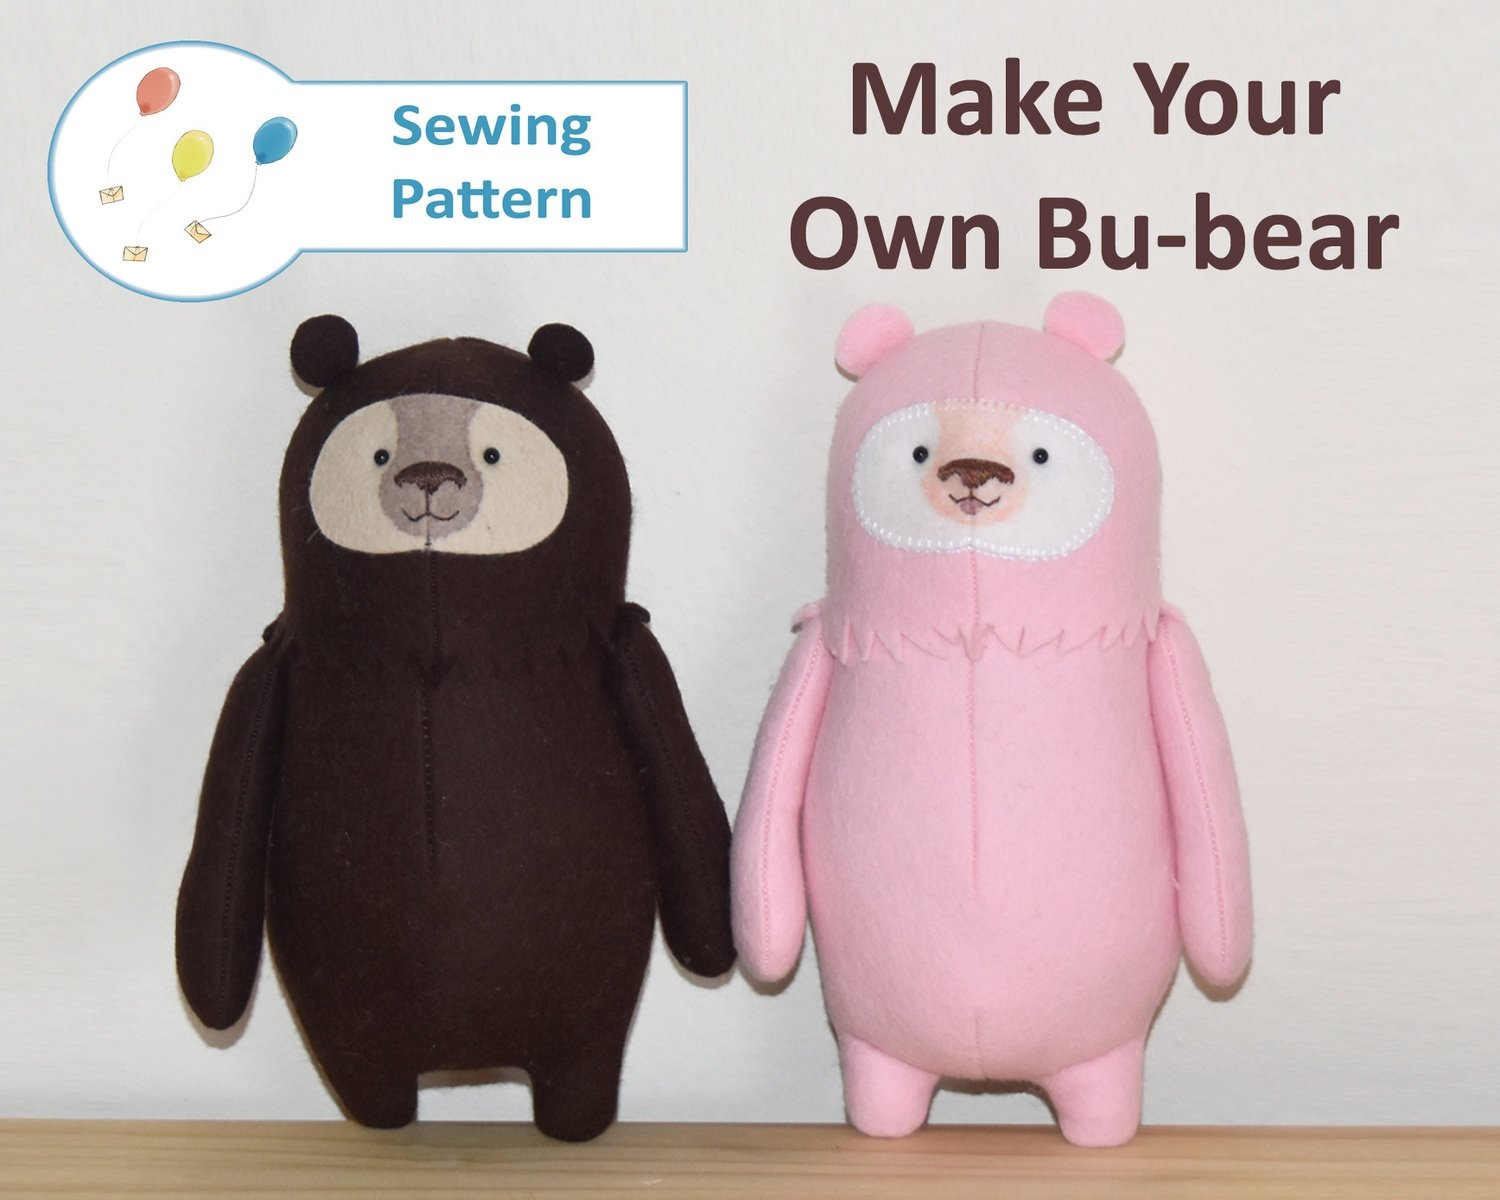 A4 SIZED Cute Bu-bear Teddy Bear Starter Sewing Pattern! Beginner Suitable,  felt plushie pincushion